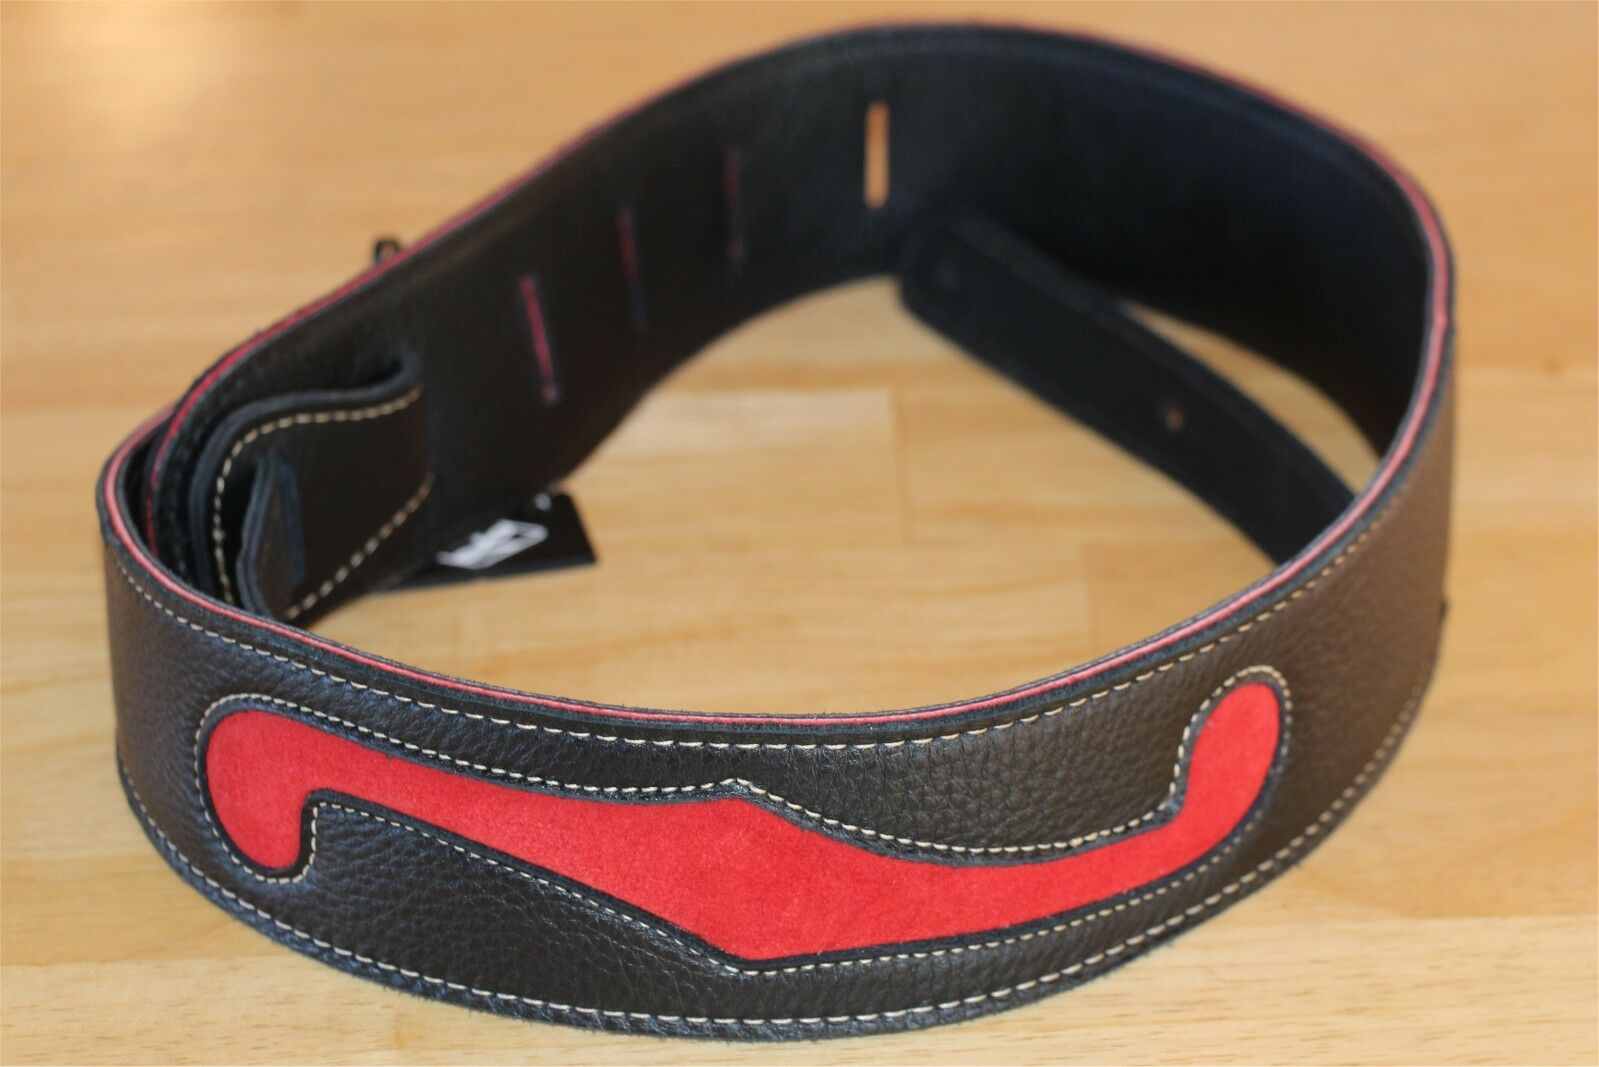 New FM Products F-Hole Leather Guitar Strap